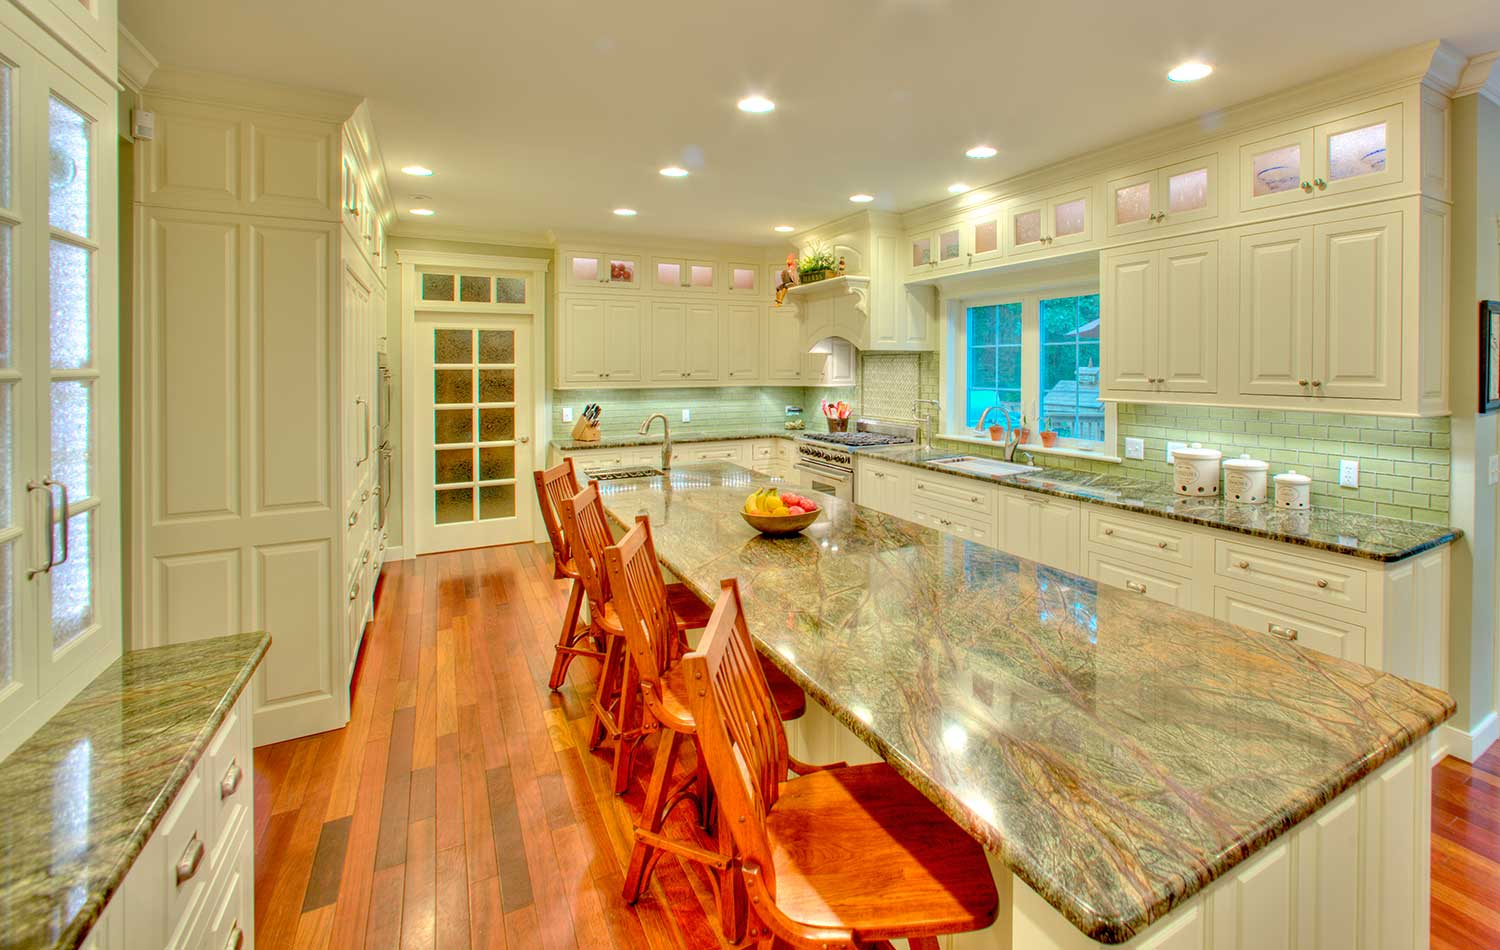 Remodeled kitchen space for a busy family